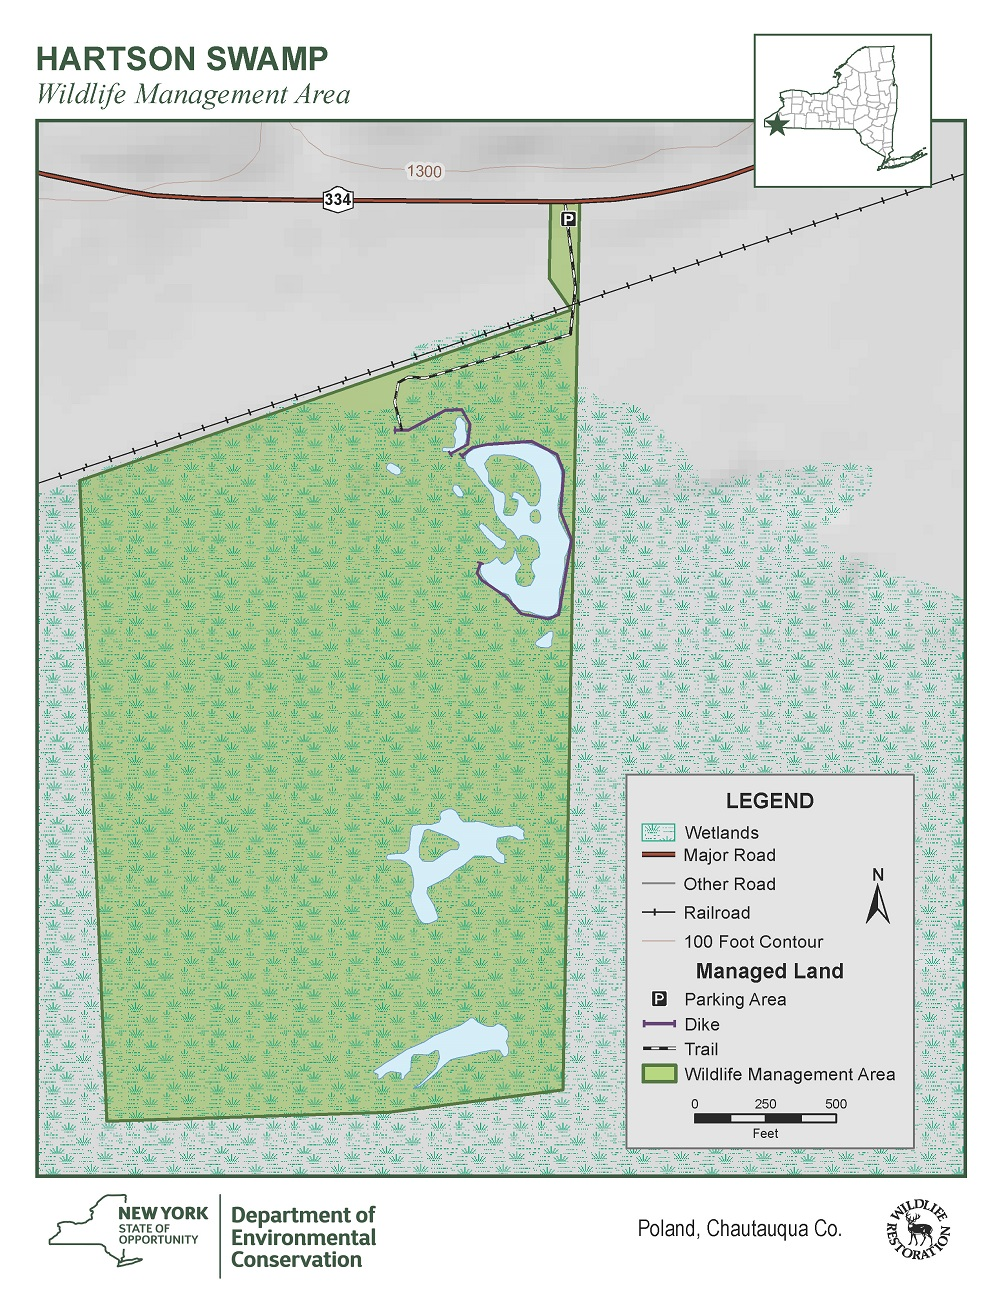 Map of Hartson Swamp WMA